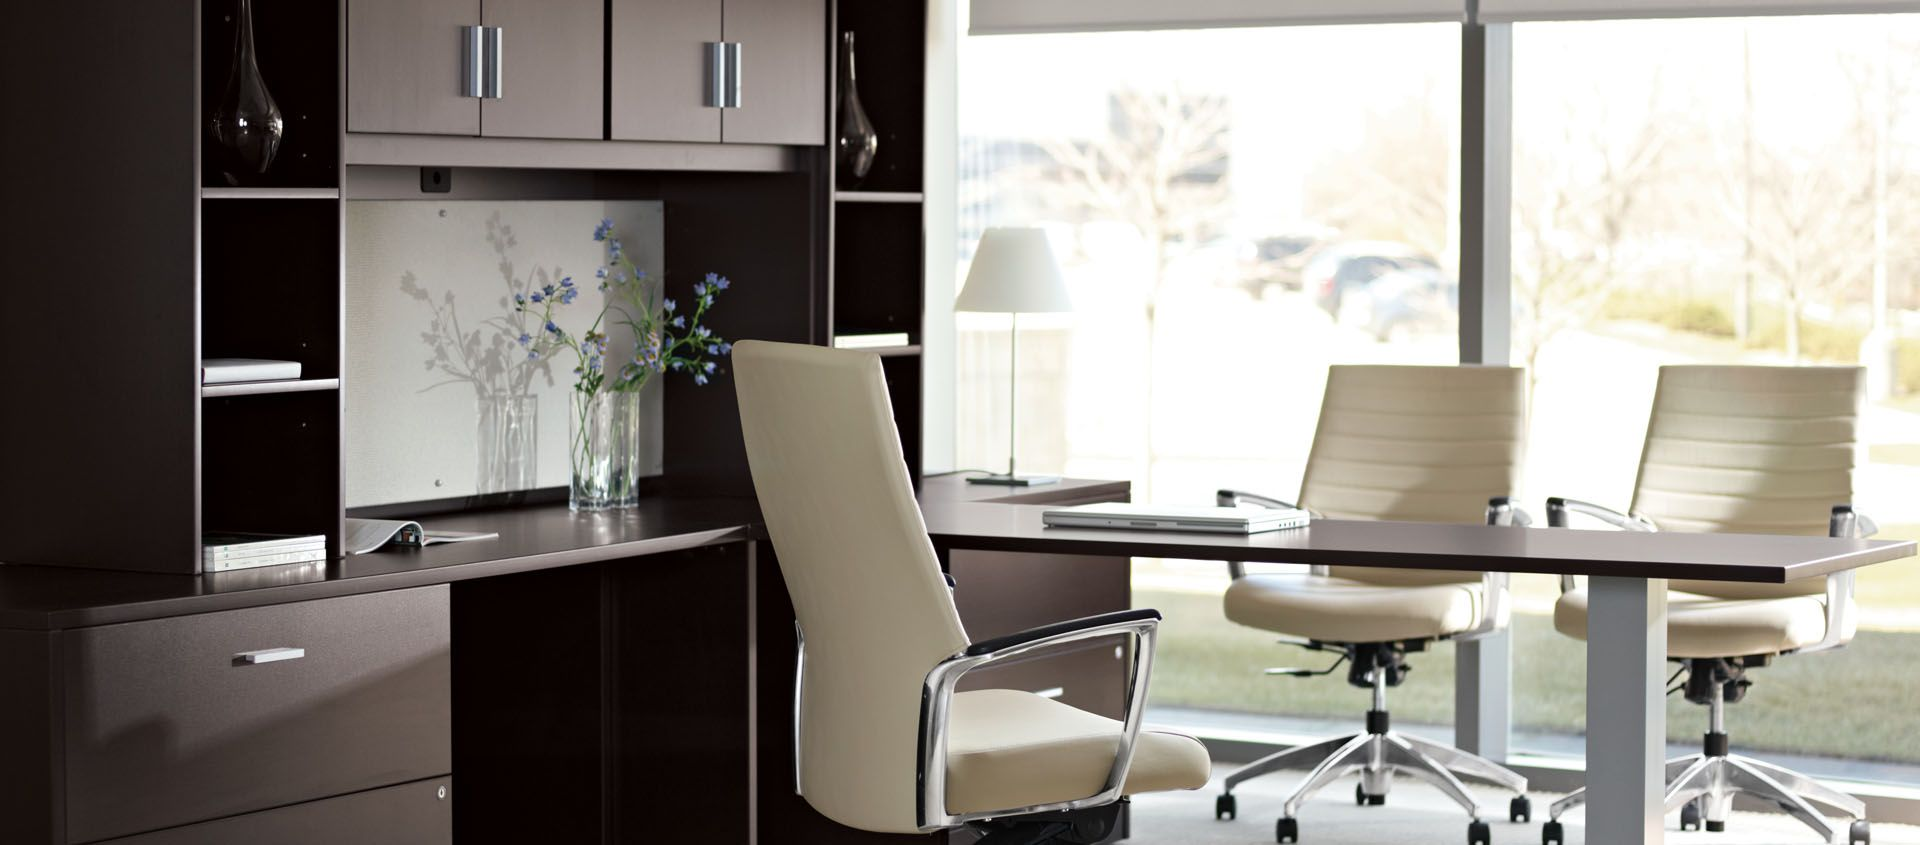 Direct office furniture inc furnishes modern and contemporary office furniture to maryland washington dc northern virginia and nationwide offices